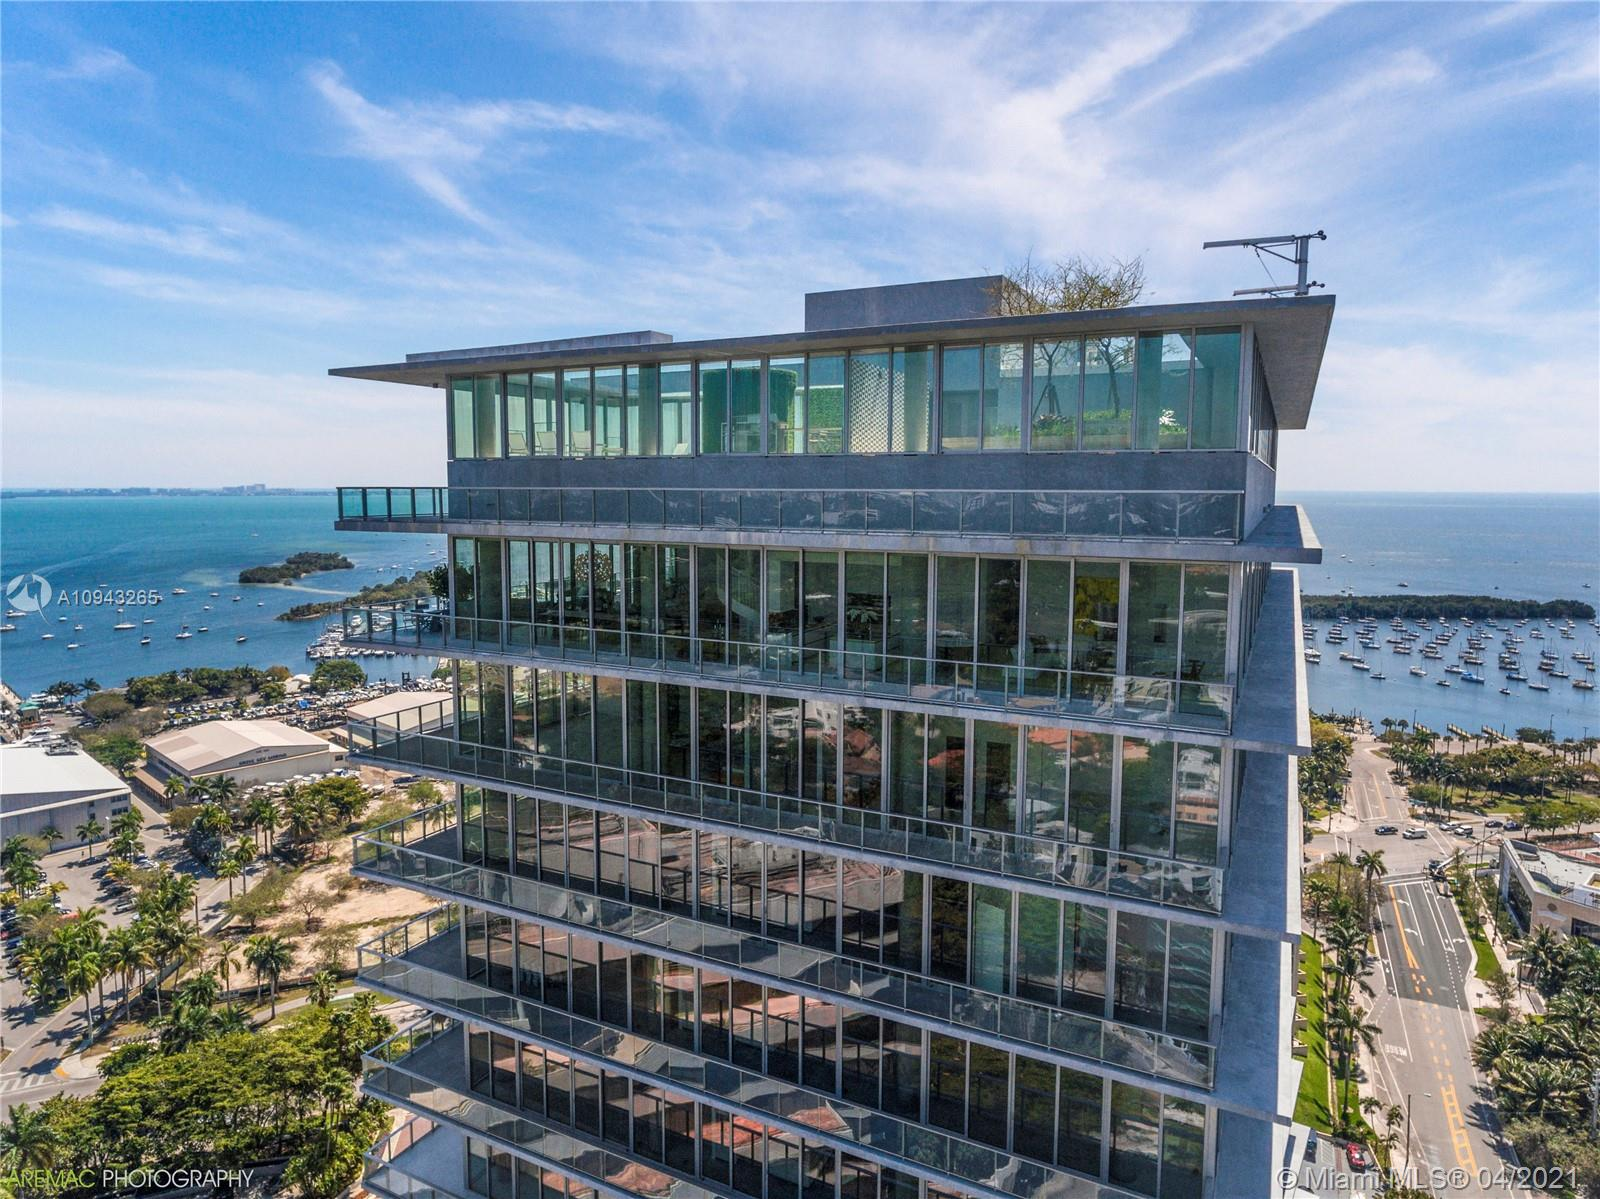 """Grove at Grand Bay AKA """"twisting towers"""" is an architectural masterpiece. Winner of 5 Architectural awards. Unit 2001S is located in the South Tower with only 39 other residences. Enjoy an exclusive, luxurious lifestyle like no other. 12' ceilings and terraces with summer kitchen. Direct waterfront with coveted NE exposure. Unit offers cascading natural light and will be professionally finished by design team. Towers over the neighboring buildings featuring some of the best views of Biscayne Bay, Miami skyline and Coconut Grove. 5 star Amenities include Private on site Chef, Spa, Gym, roof top pool and concierge service."""